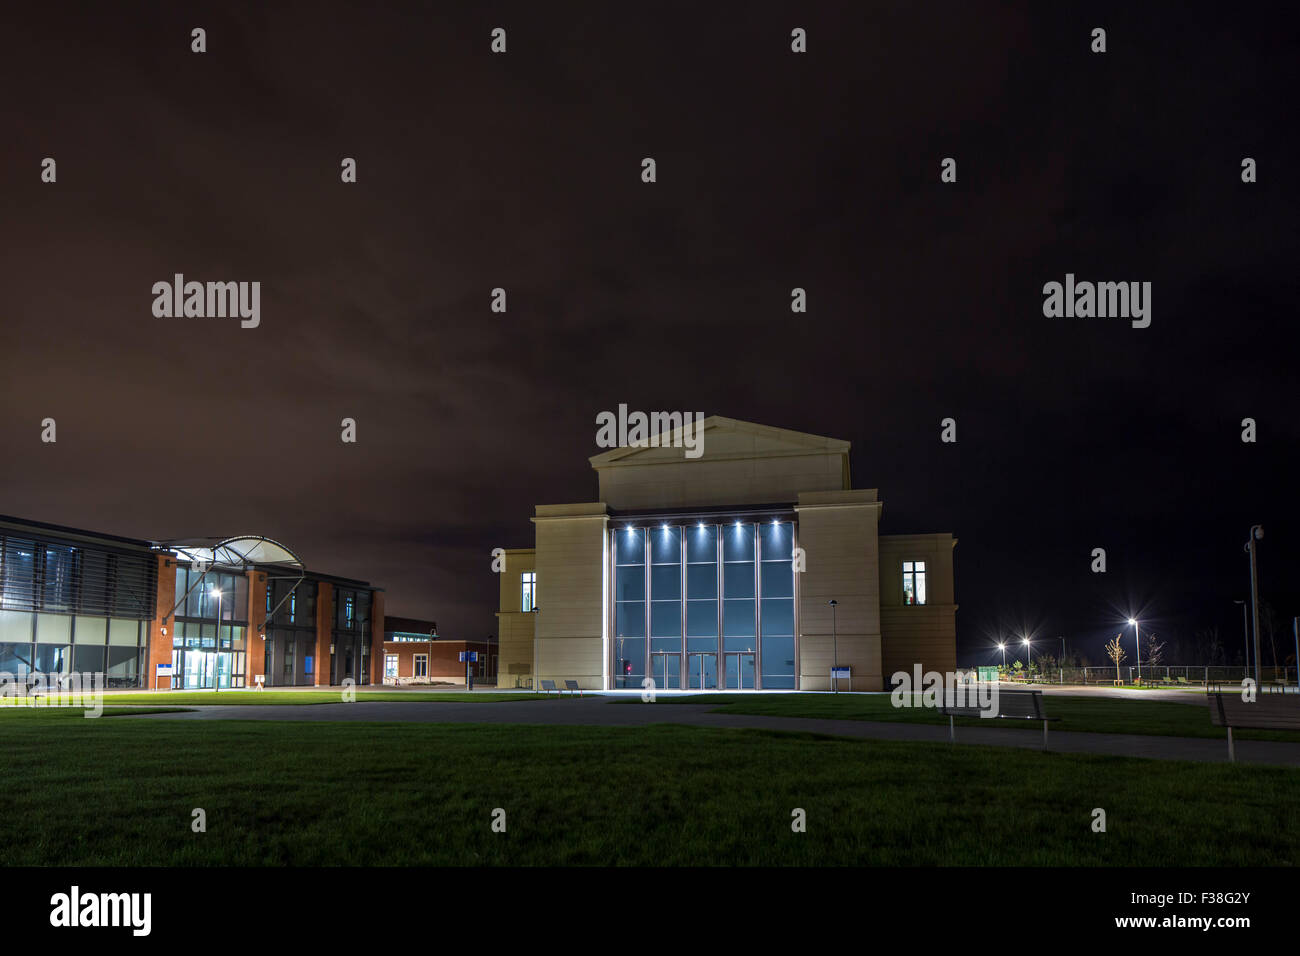 The new 'Bay Campus' of Swansea University, based in the east of the City off Fabian Way. - Stock Image